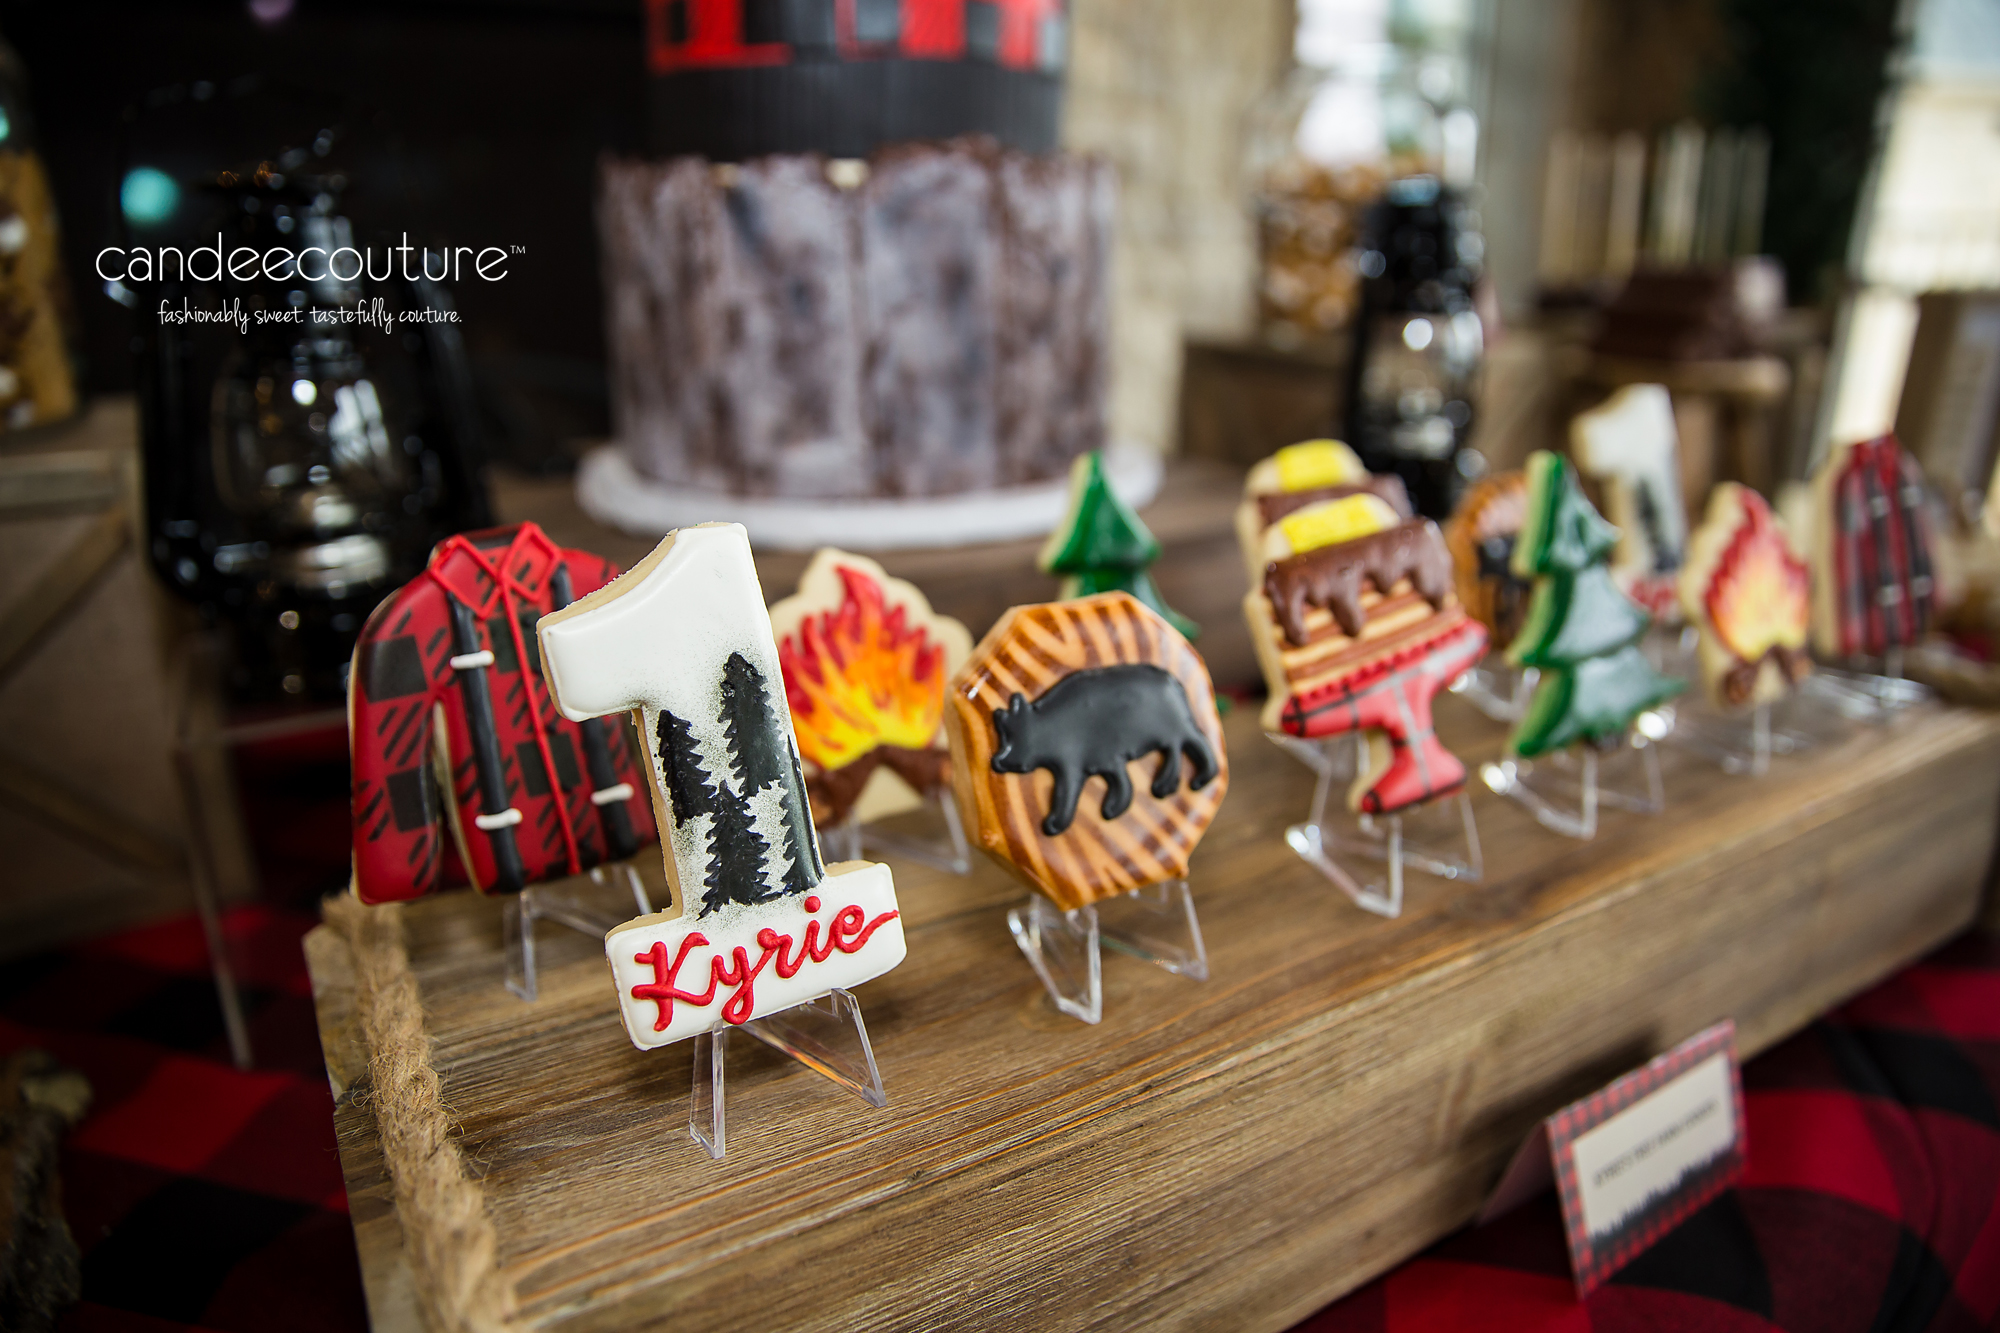 Lumberjack cookies, cookies, custom cookies, camping cookies, campfire cookie, bear cookies, outdoor cookies, buffalo plaid, lumberjack campfire birthday party, birthday, party, party ideas, lumberjack cookies, smores cake pops, lumberjack dessert, cake, flapjacks